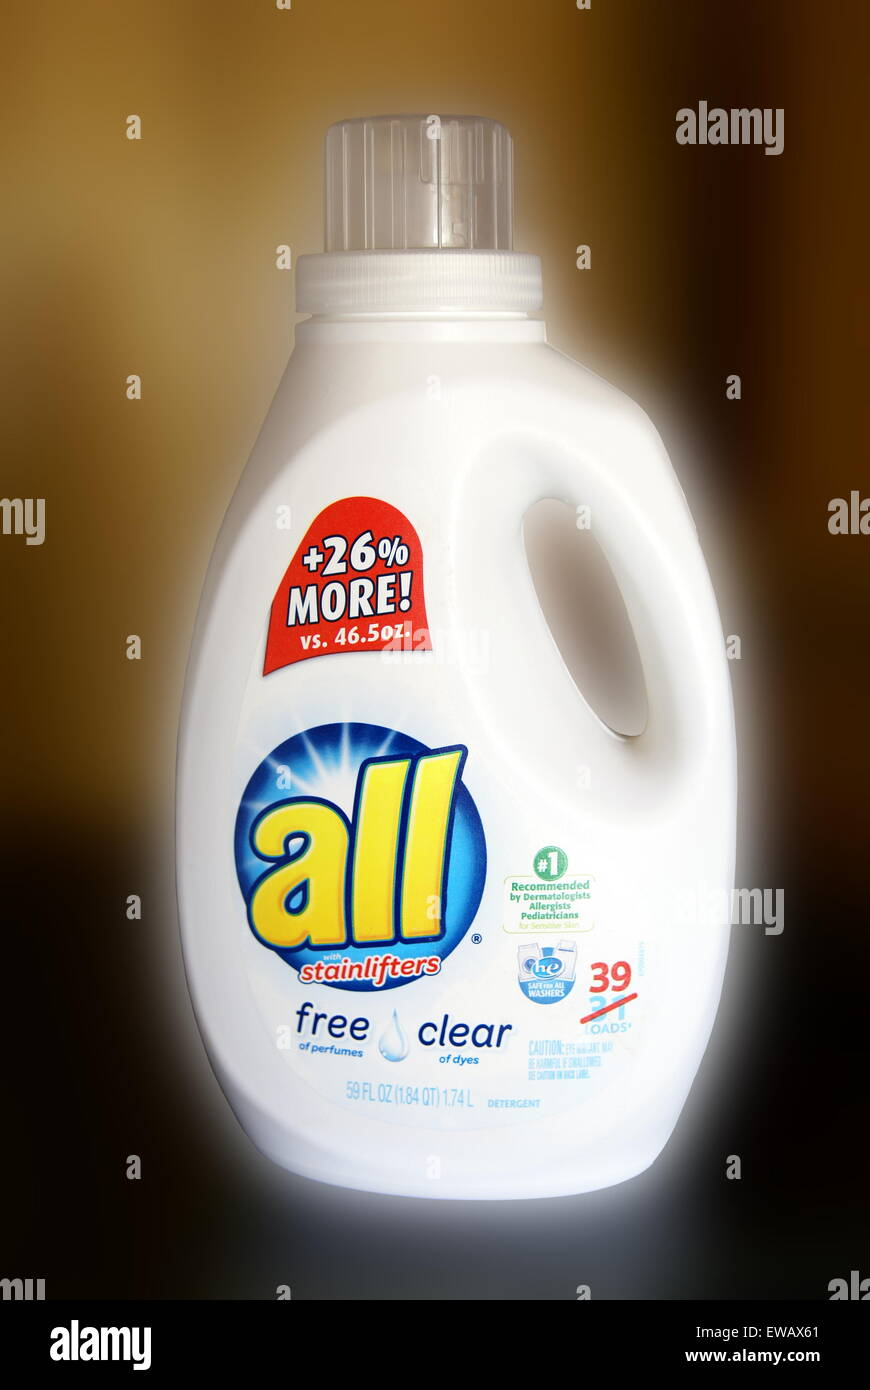 Illustrative editorial of 59 ounce bottle of brand name 'All with Stainlifters' laundry detergent from Sun - Stock Image